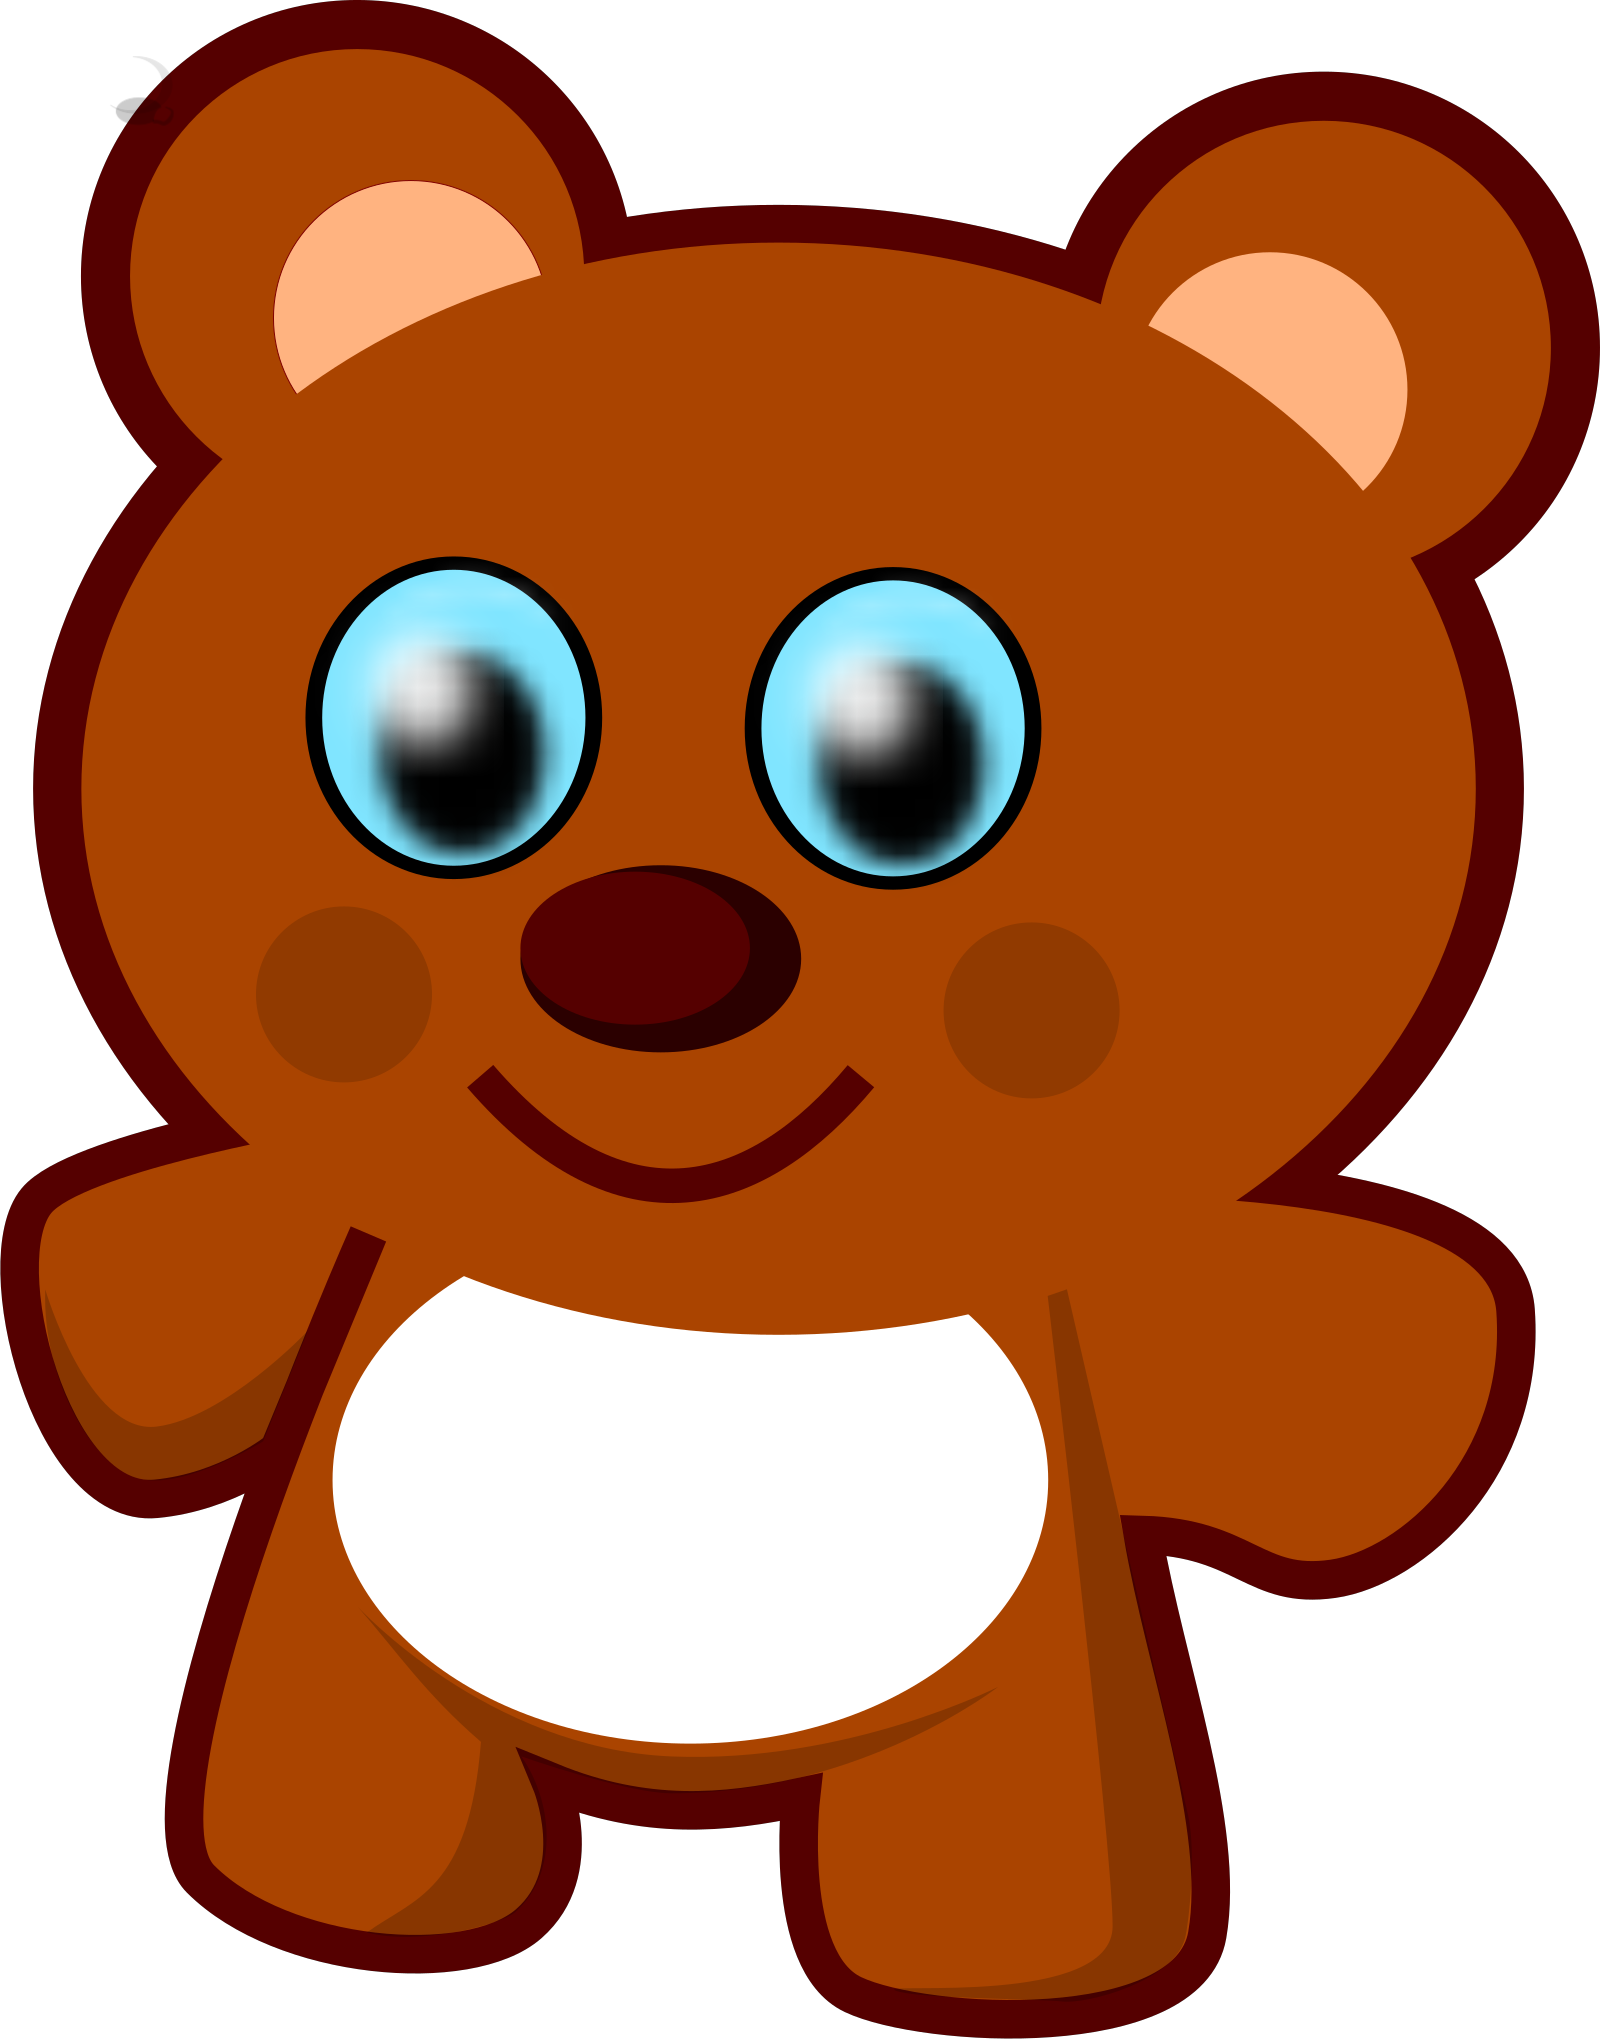 Teddy Bear SVG Clip arts